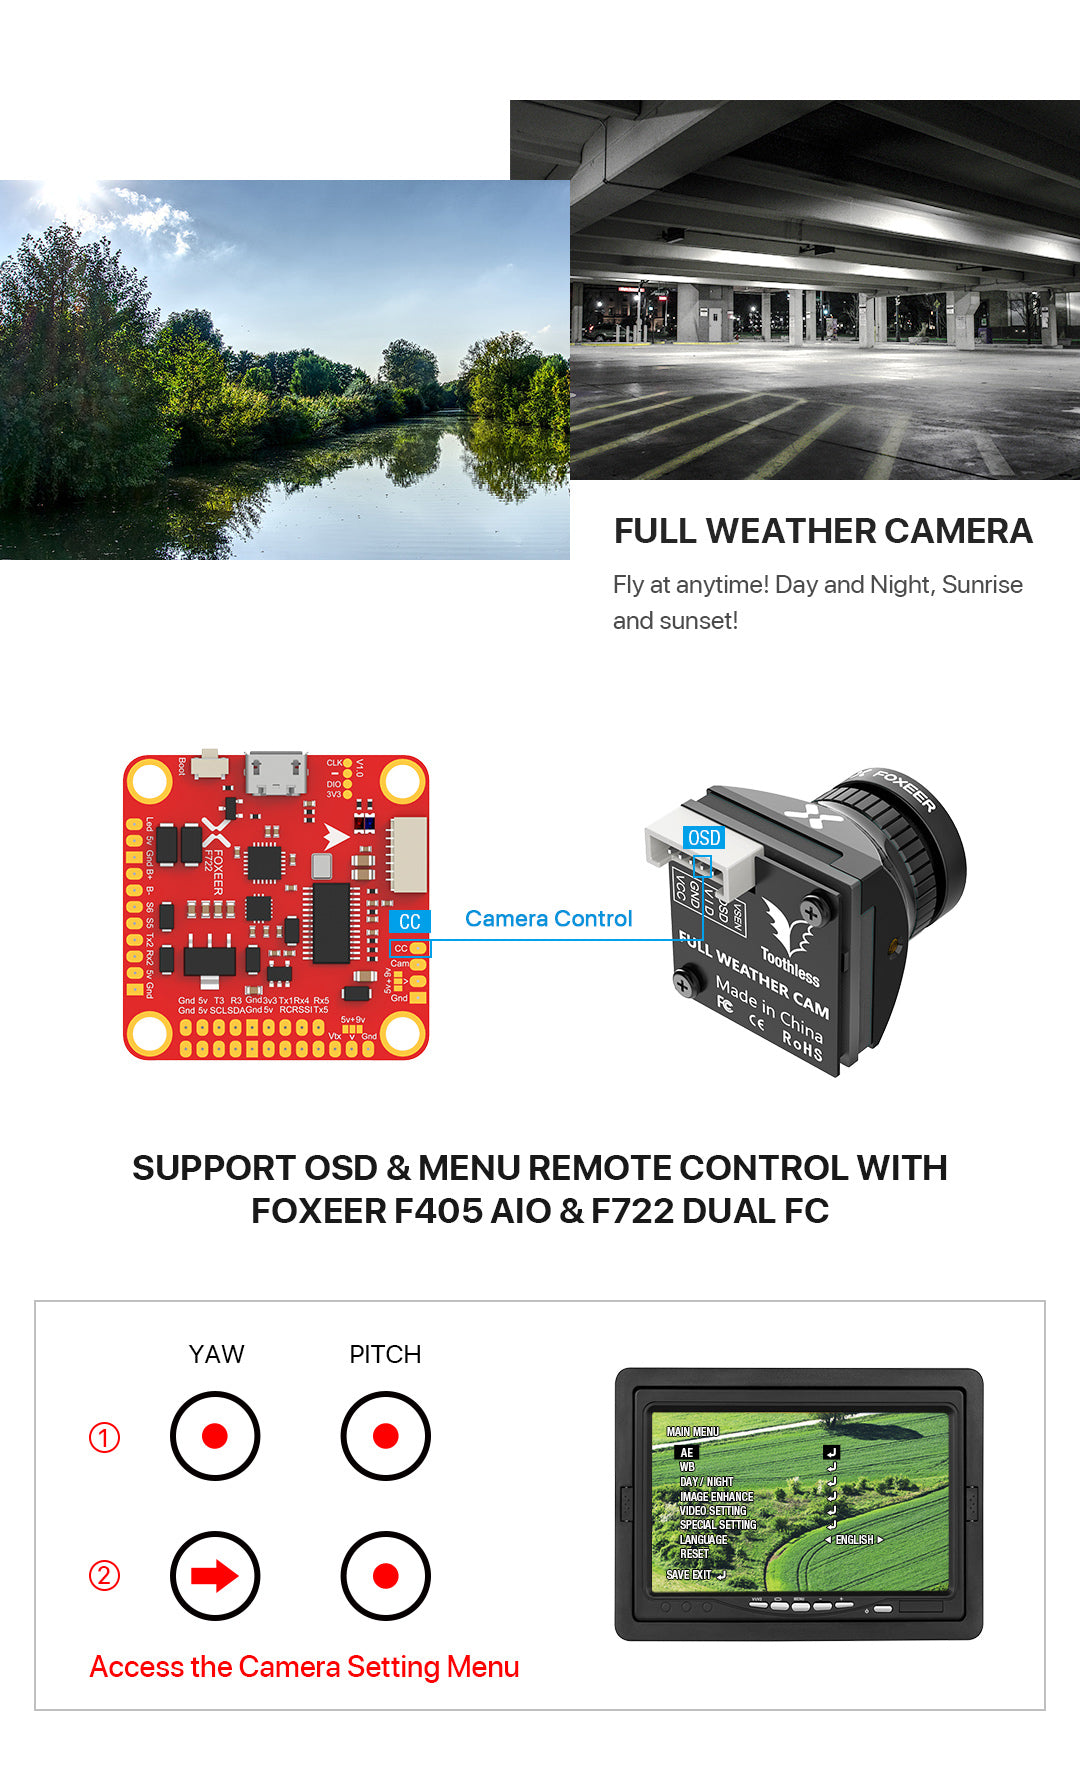 Foxeer Toothless 2 Micro FPV Camera